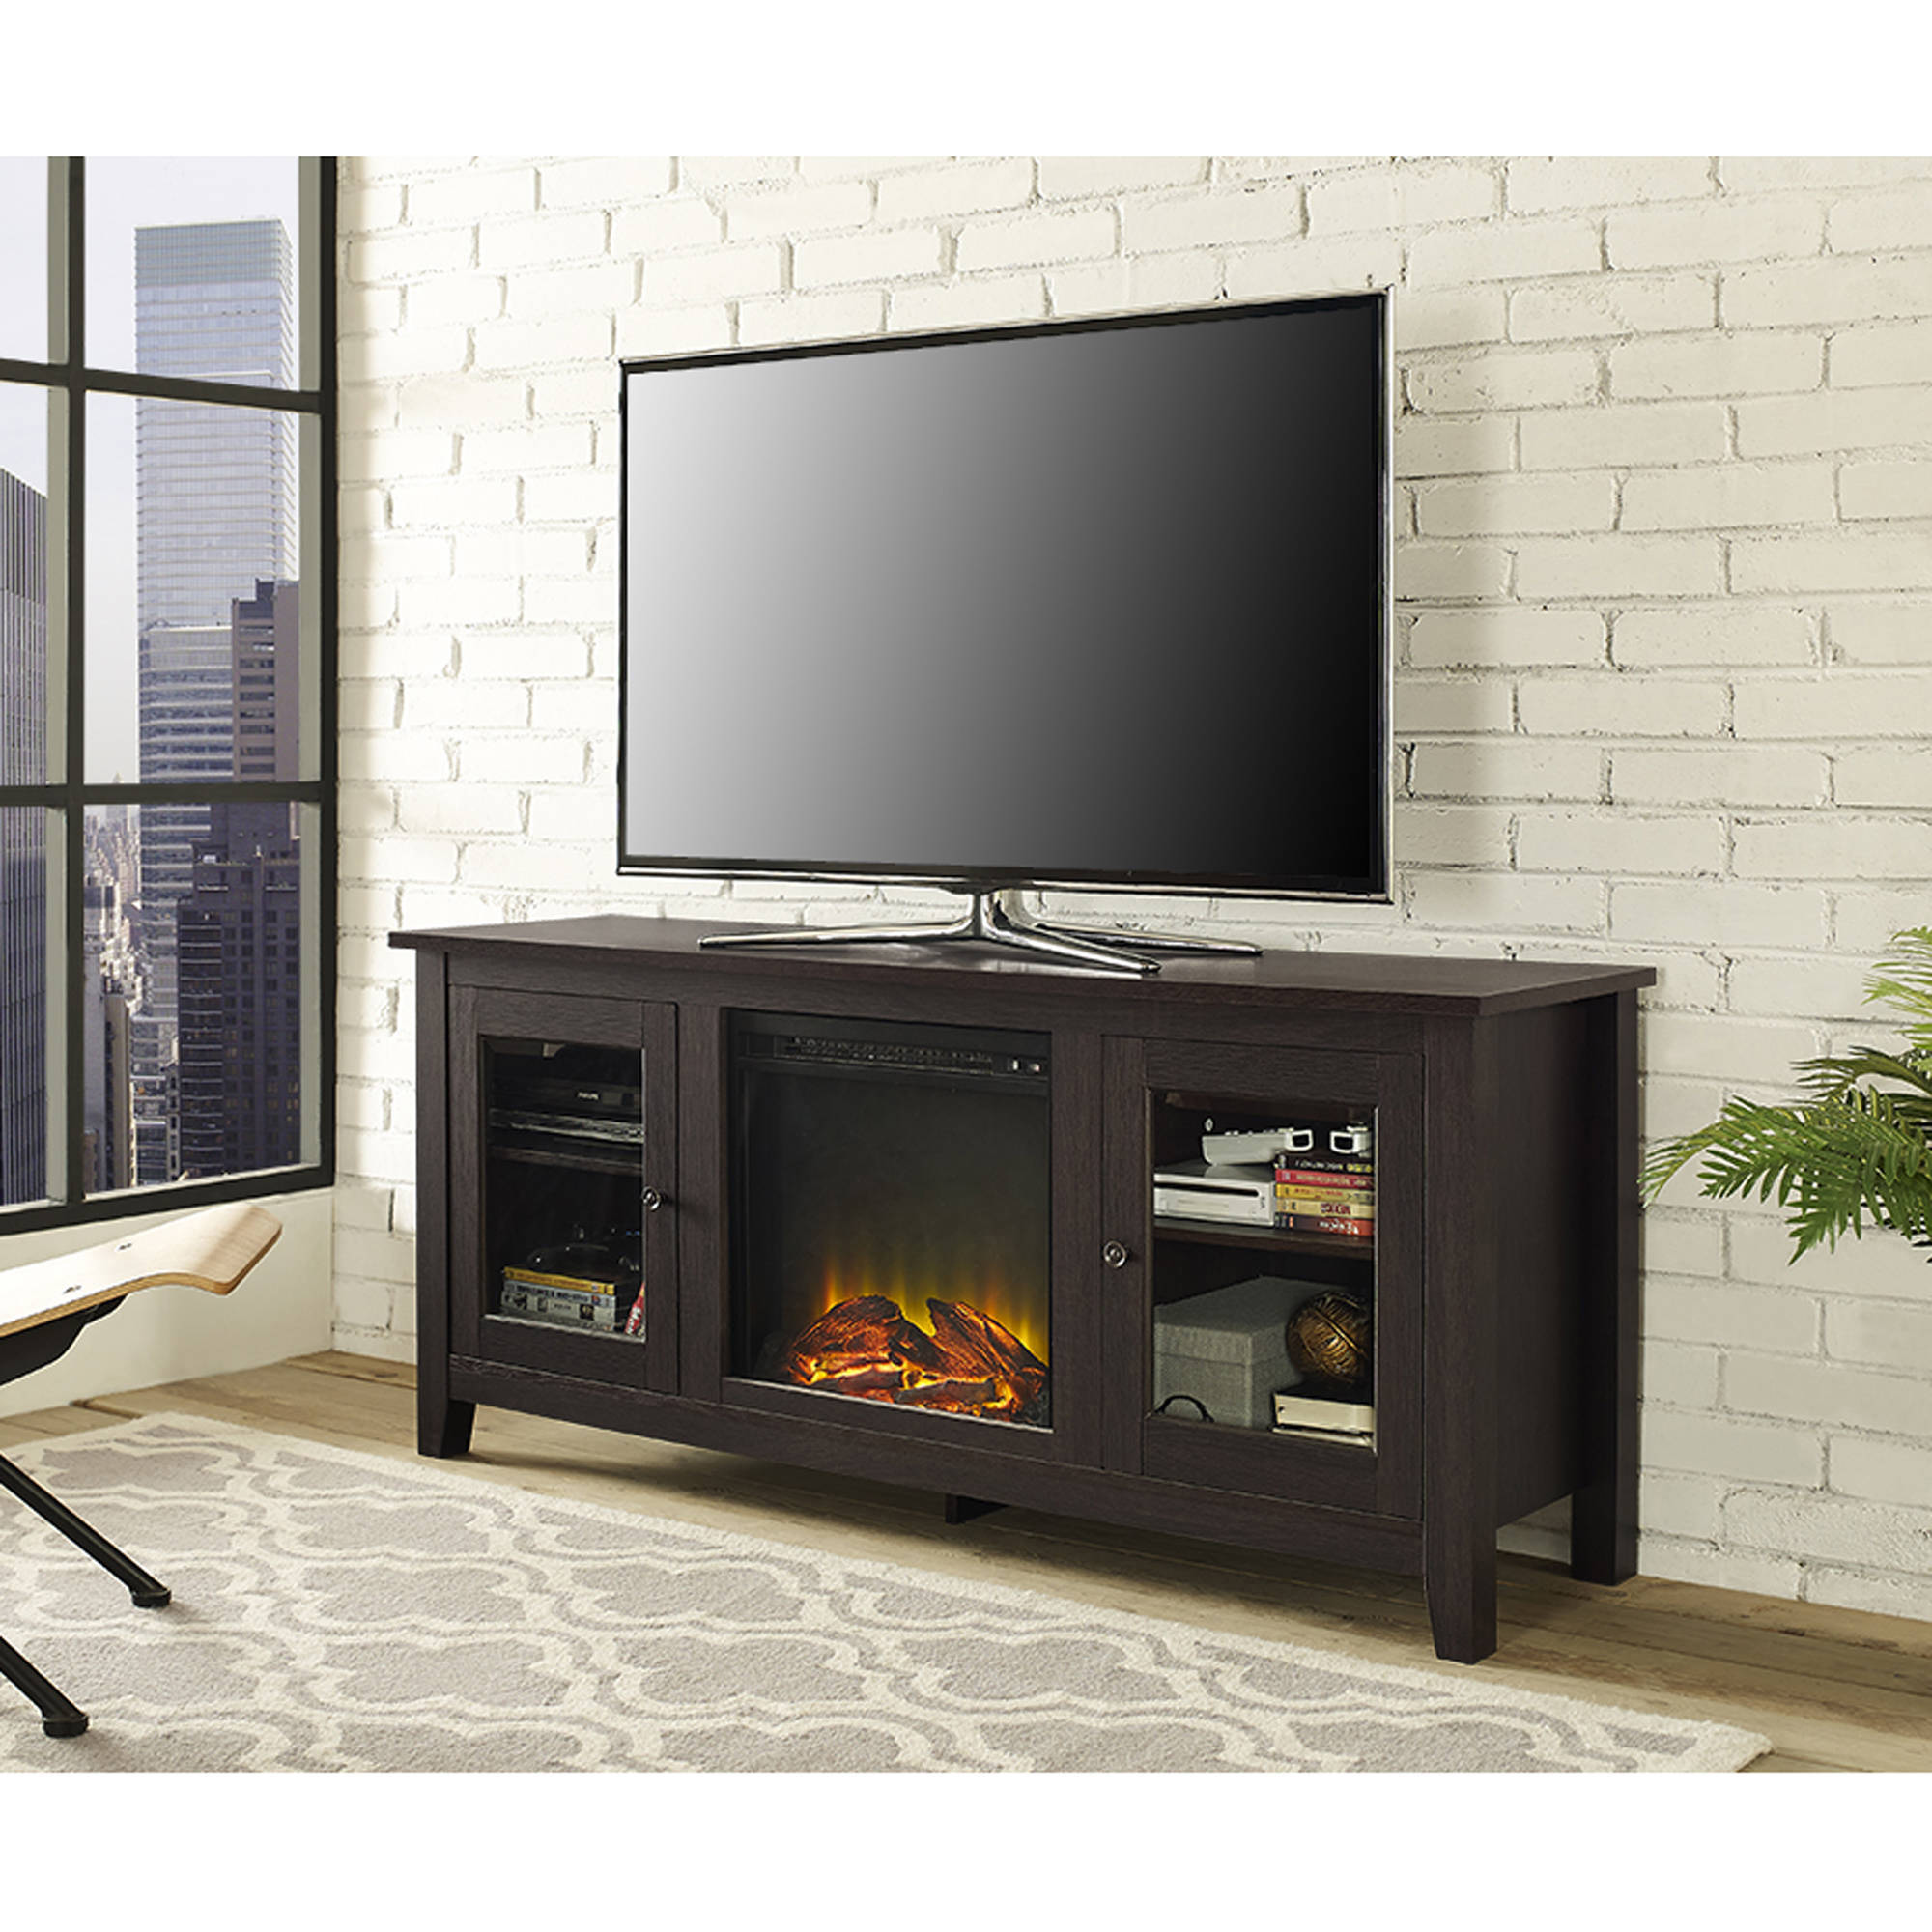 "Wood TV Stand with Fireplace, for TVs up to 60"", Multiple Finishes"